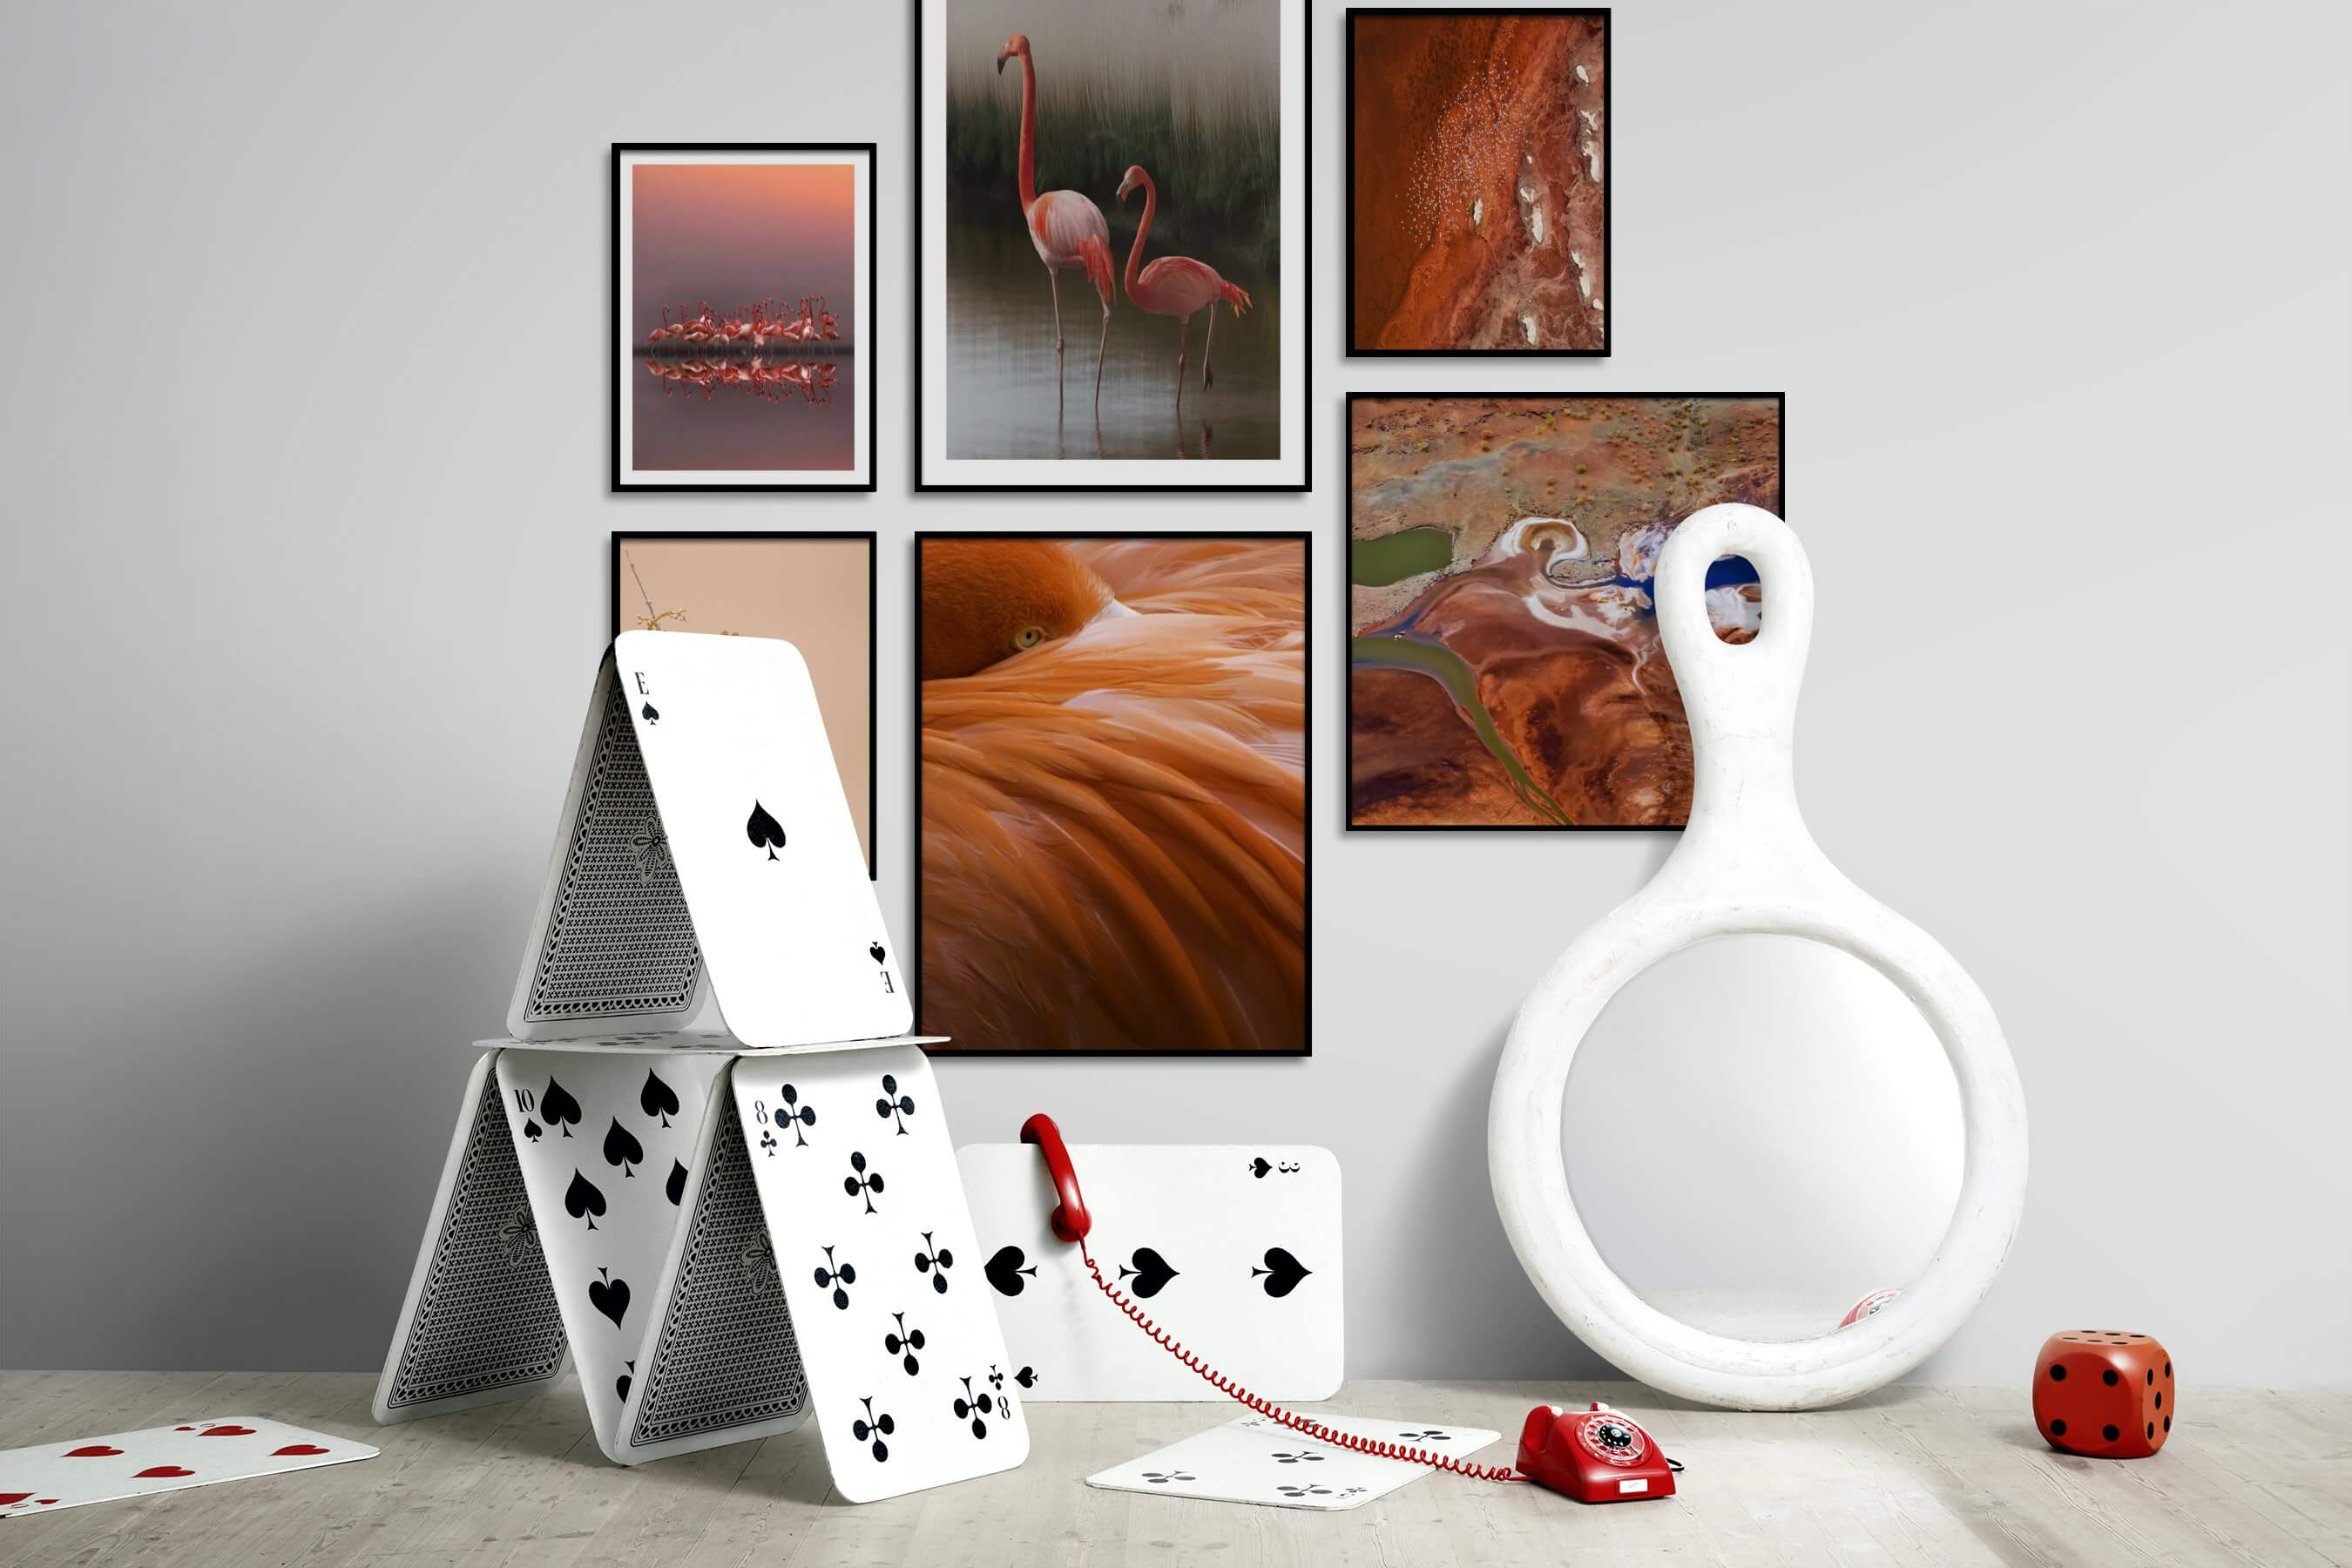 Gallery wall idea with six framed pictures arranged on a wall depicting For the Minimalist, Animals, For the Moderate, and Nature